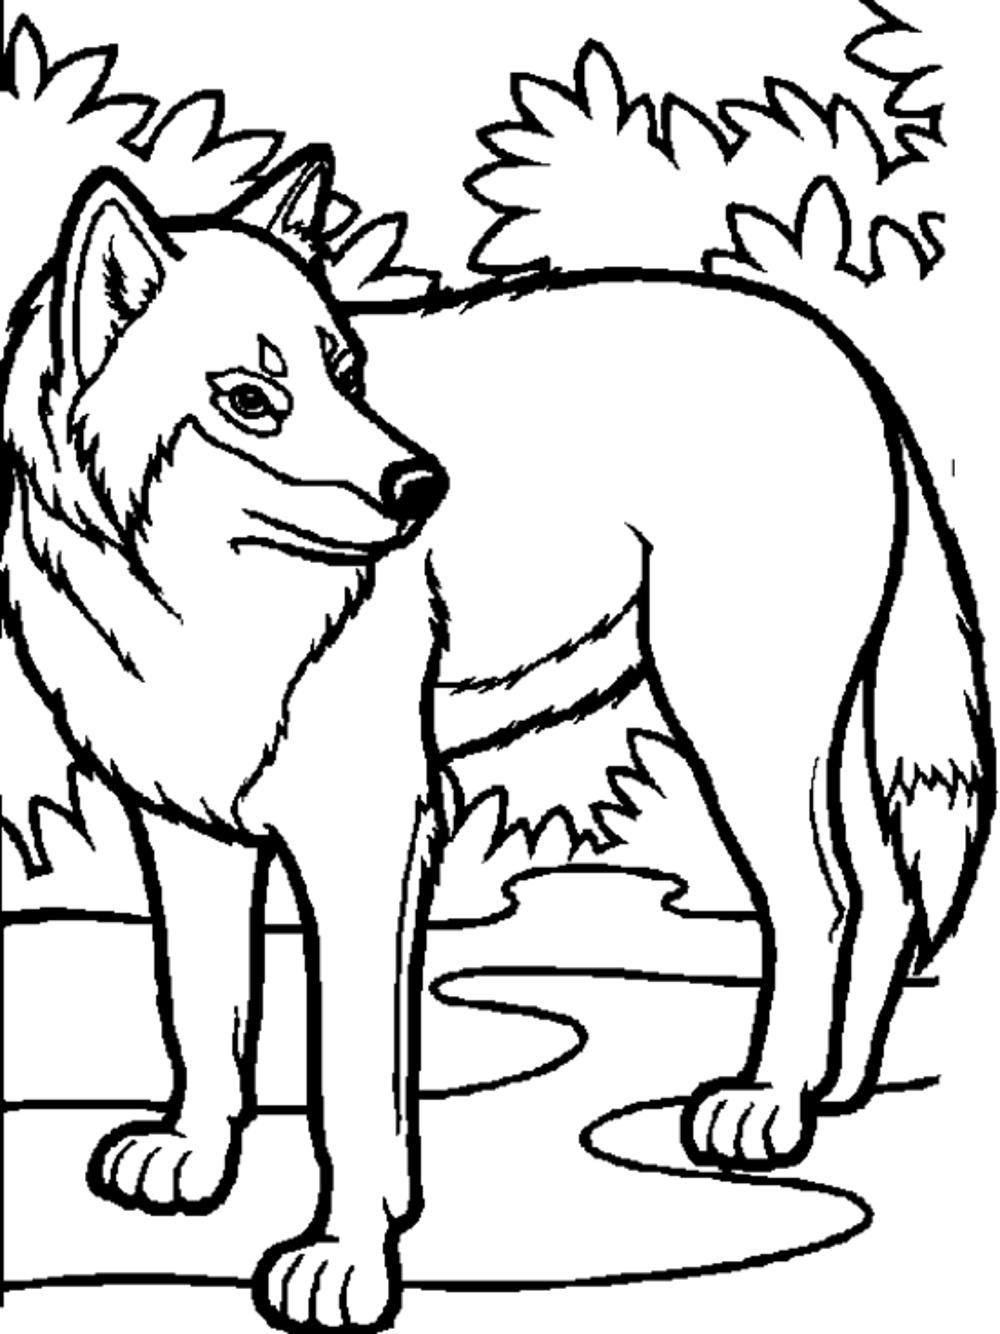 wolf pictures to print 332 free howling wolf page by lucky978 on deviantart pictures print to wolf